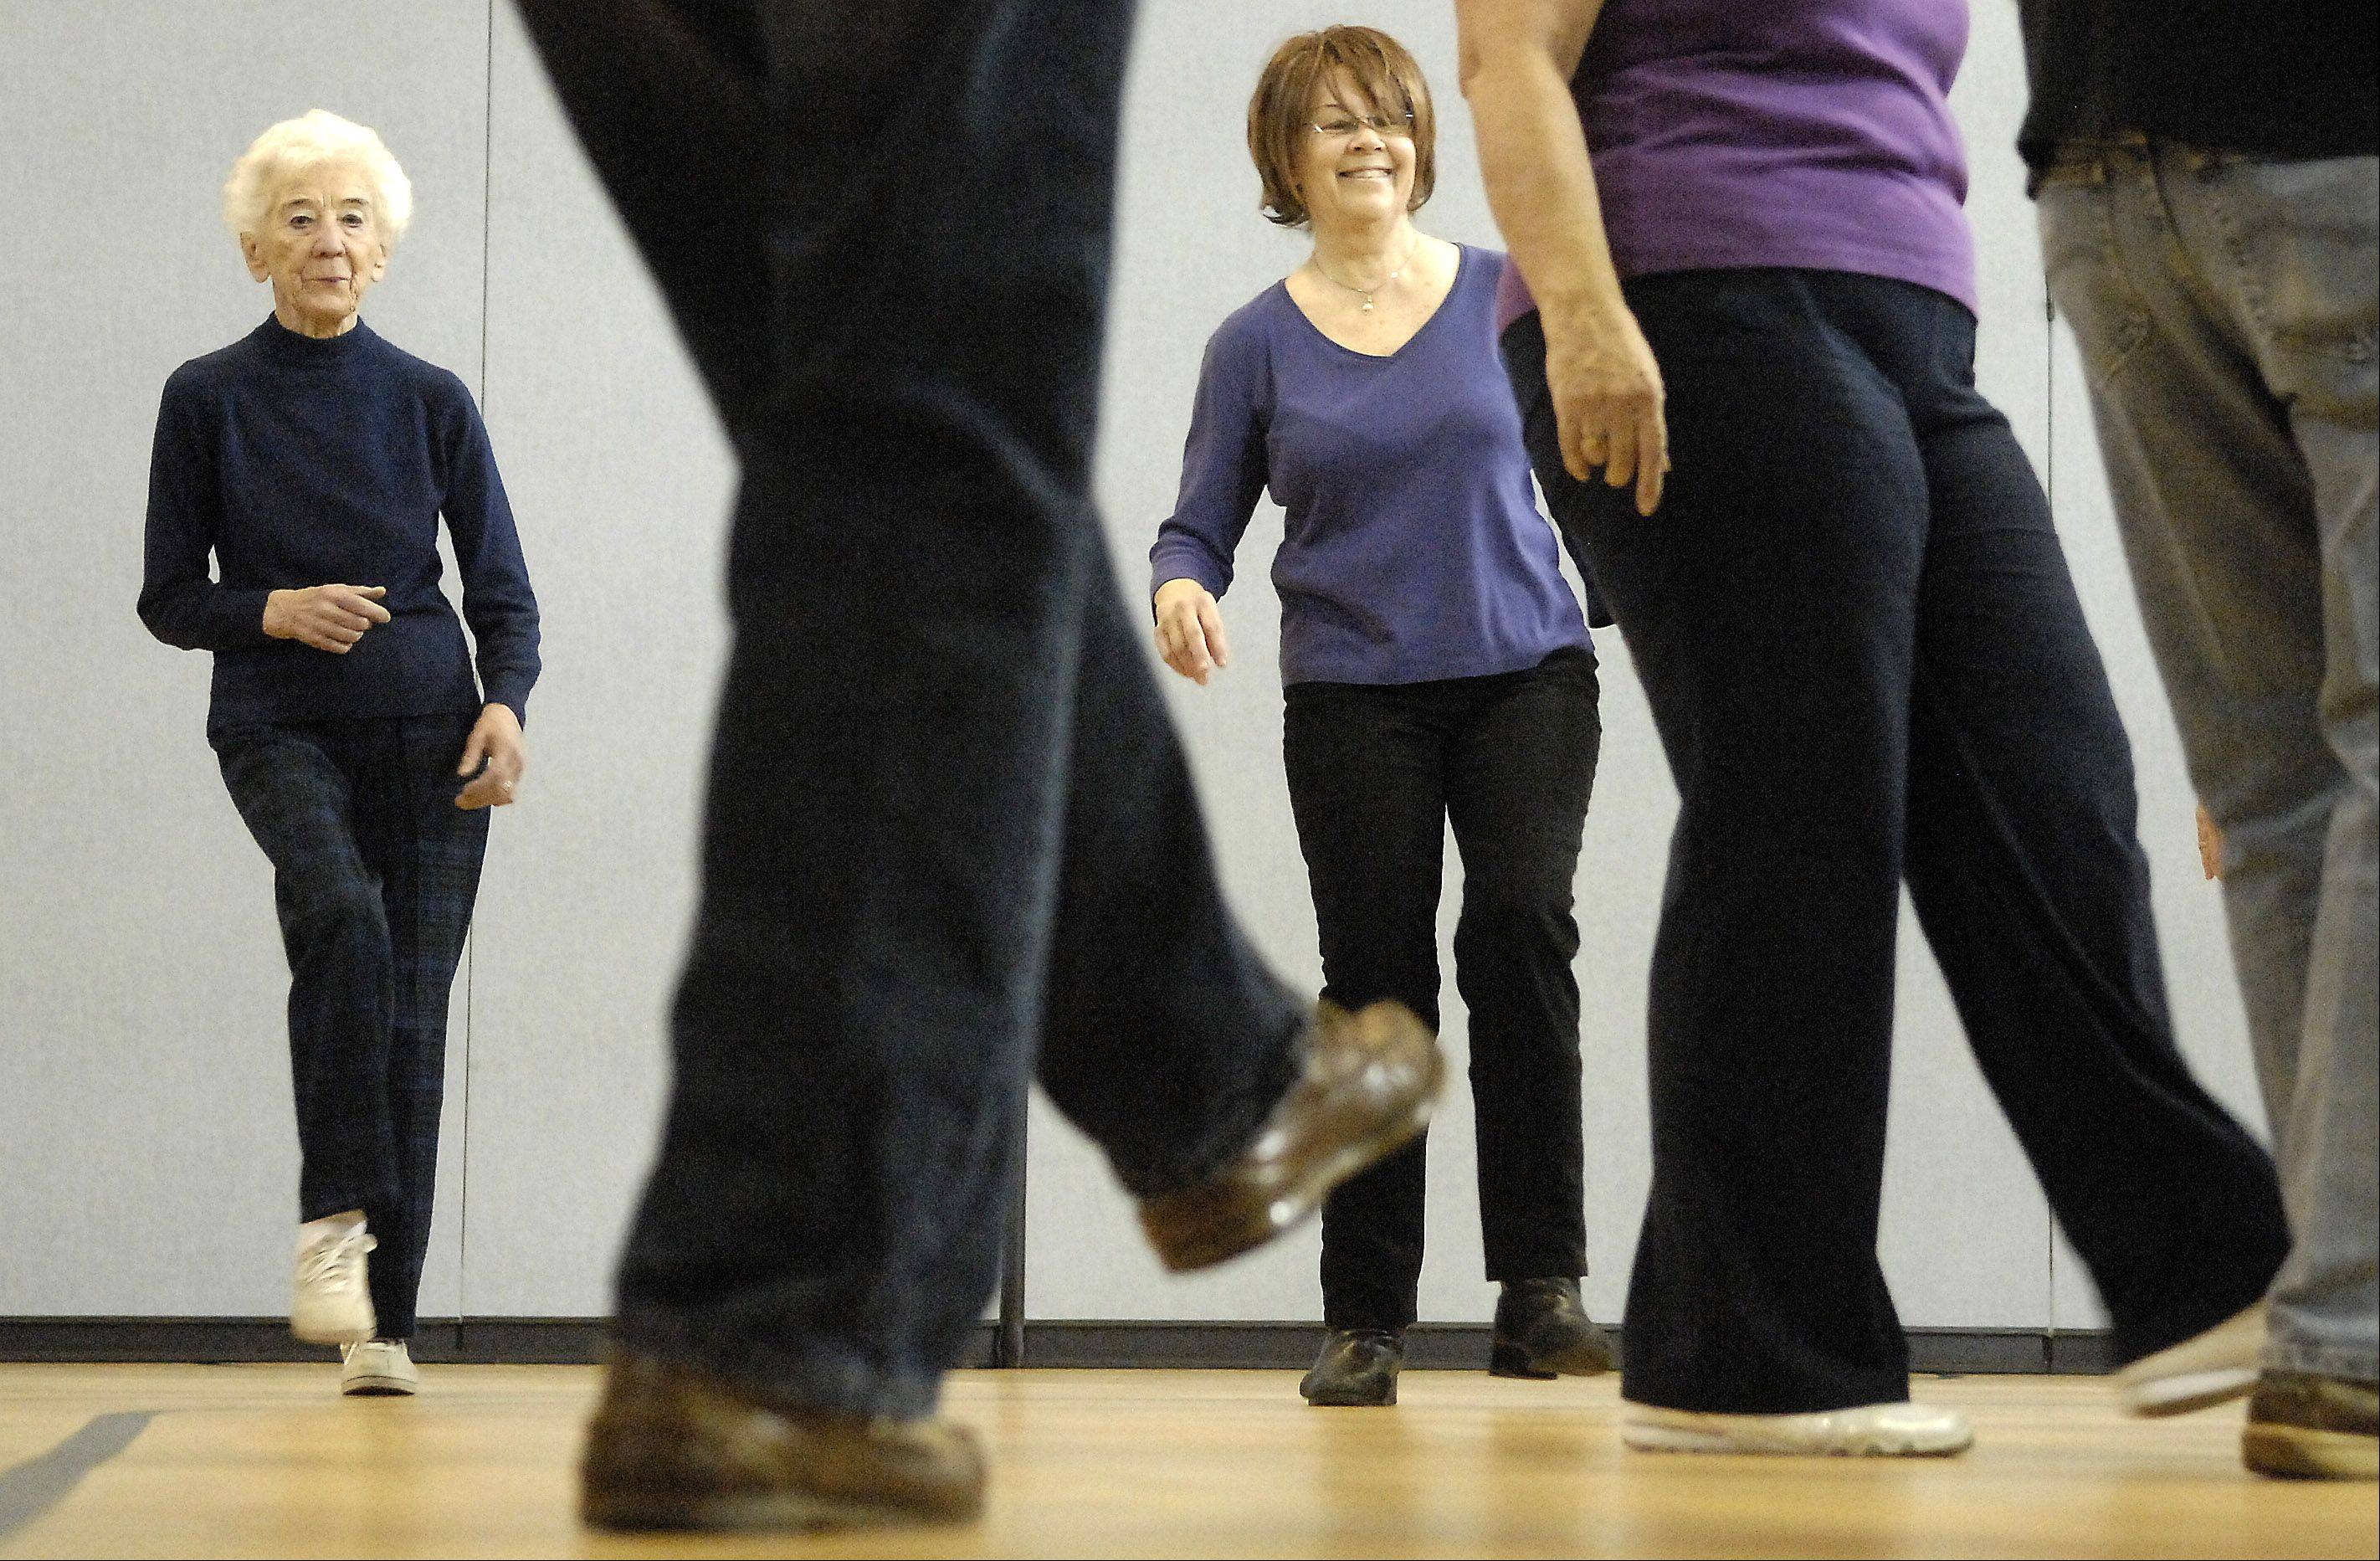 Alena Stybr, left, of St. Charles and Judy Amesbury, of Geneva, get their kicks during a line dance class at the Salvation Army in St. Charles Monday.